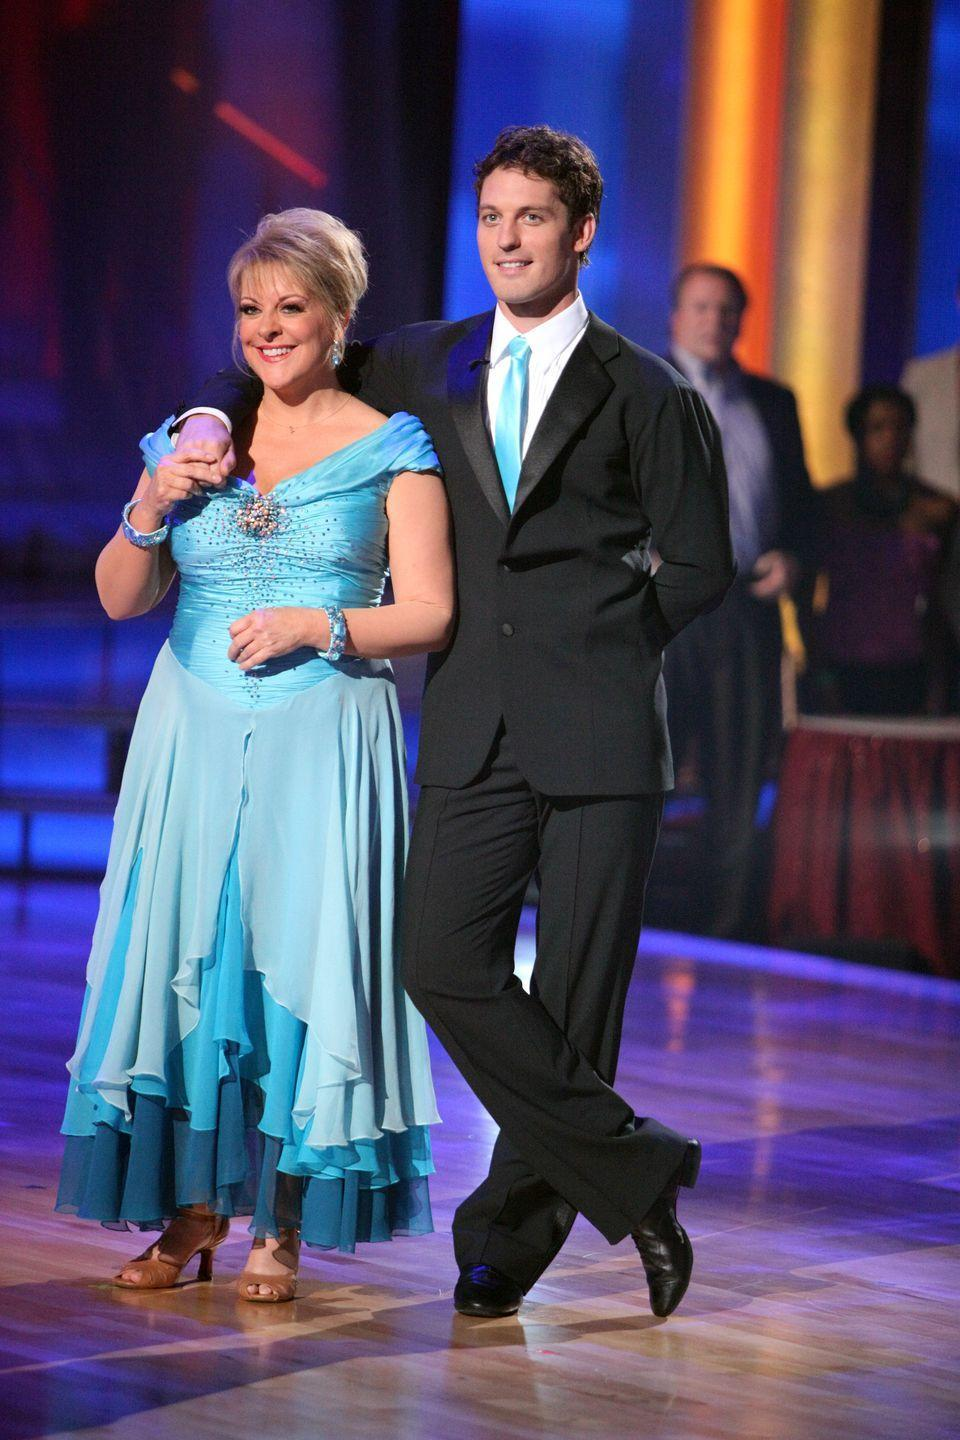 <p>It all started when Nancy Grace was being interviewed by co-host Brooke Burke and a low gargling noise was picked up by the mic. Viewers were quick to blame Nancy for releasing gas on air. The journalist denied it, and placed blame on her fellow contestants that were sitting behind her, instead.</p>